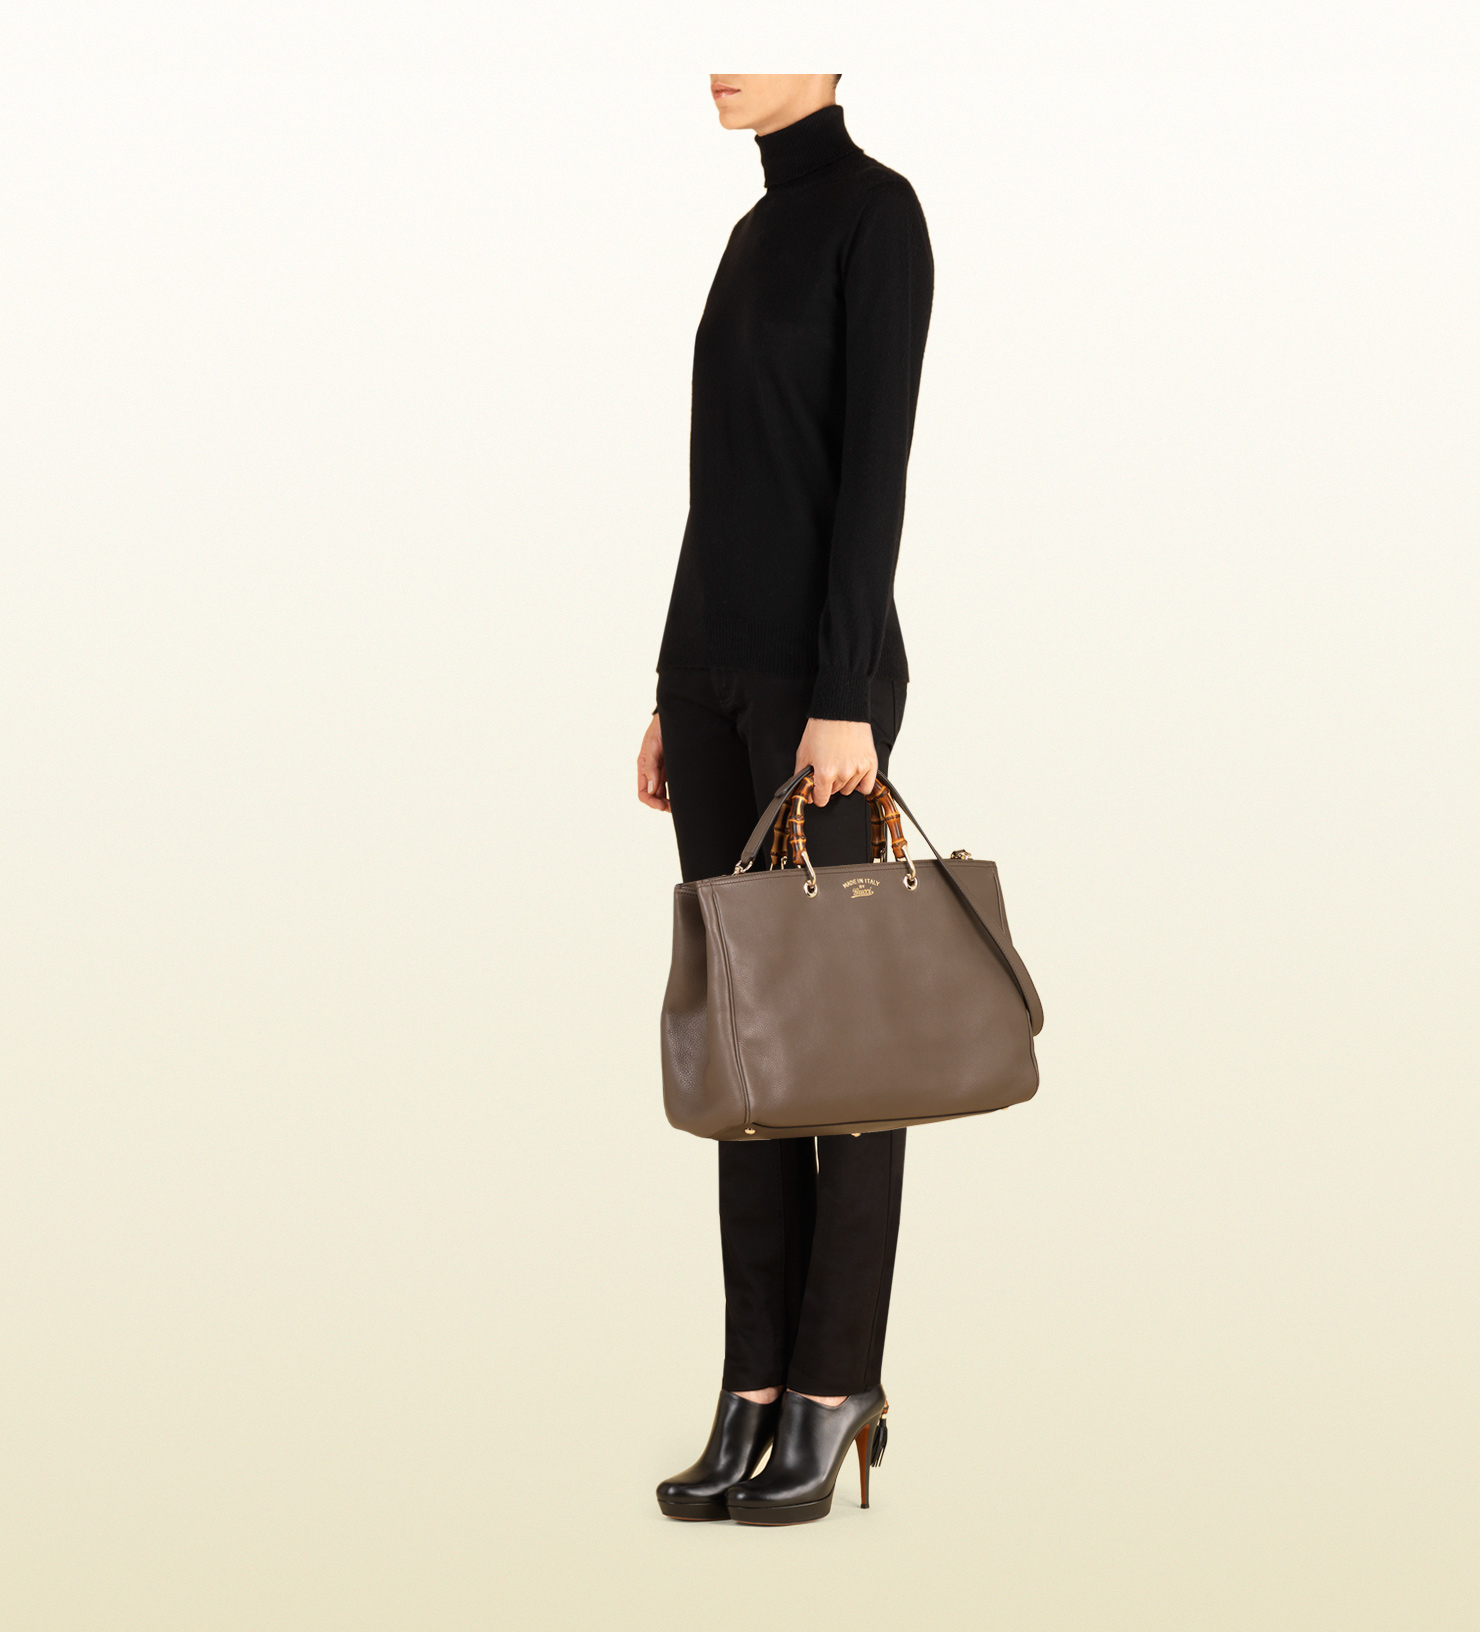 b9fd3ba52a32 Gucci Bamboo Shopper Leather Tote in Brown - Lyst